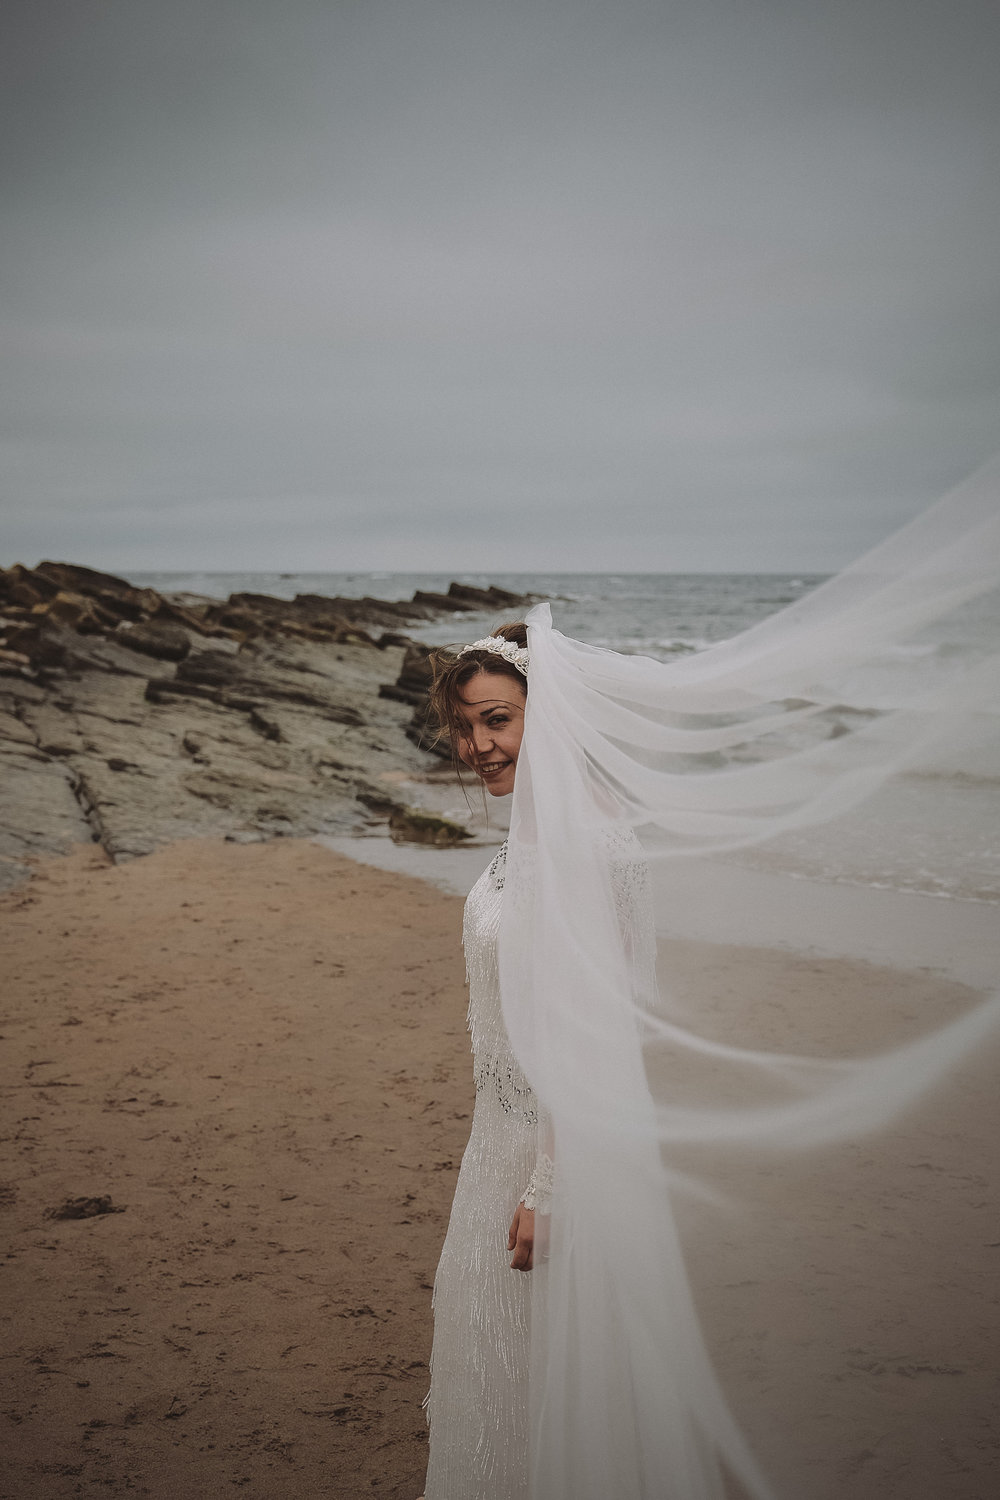 Bride smiles as her veil is caught by the wind